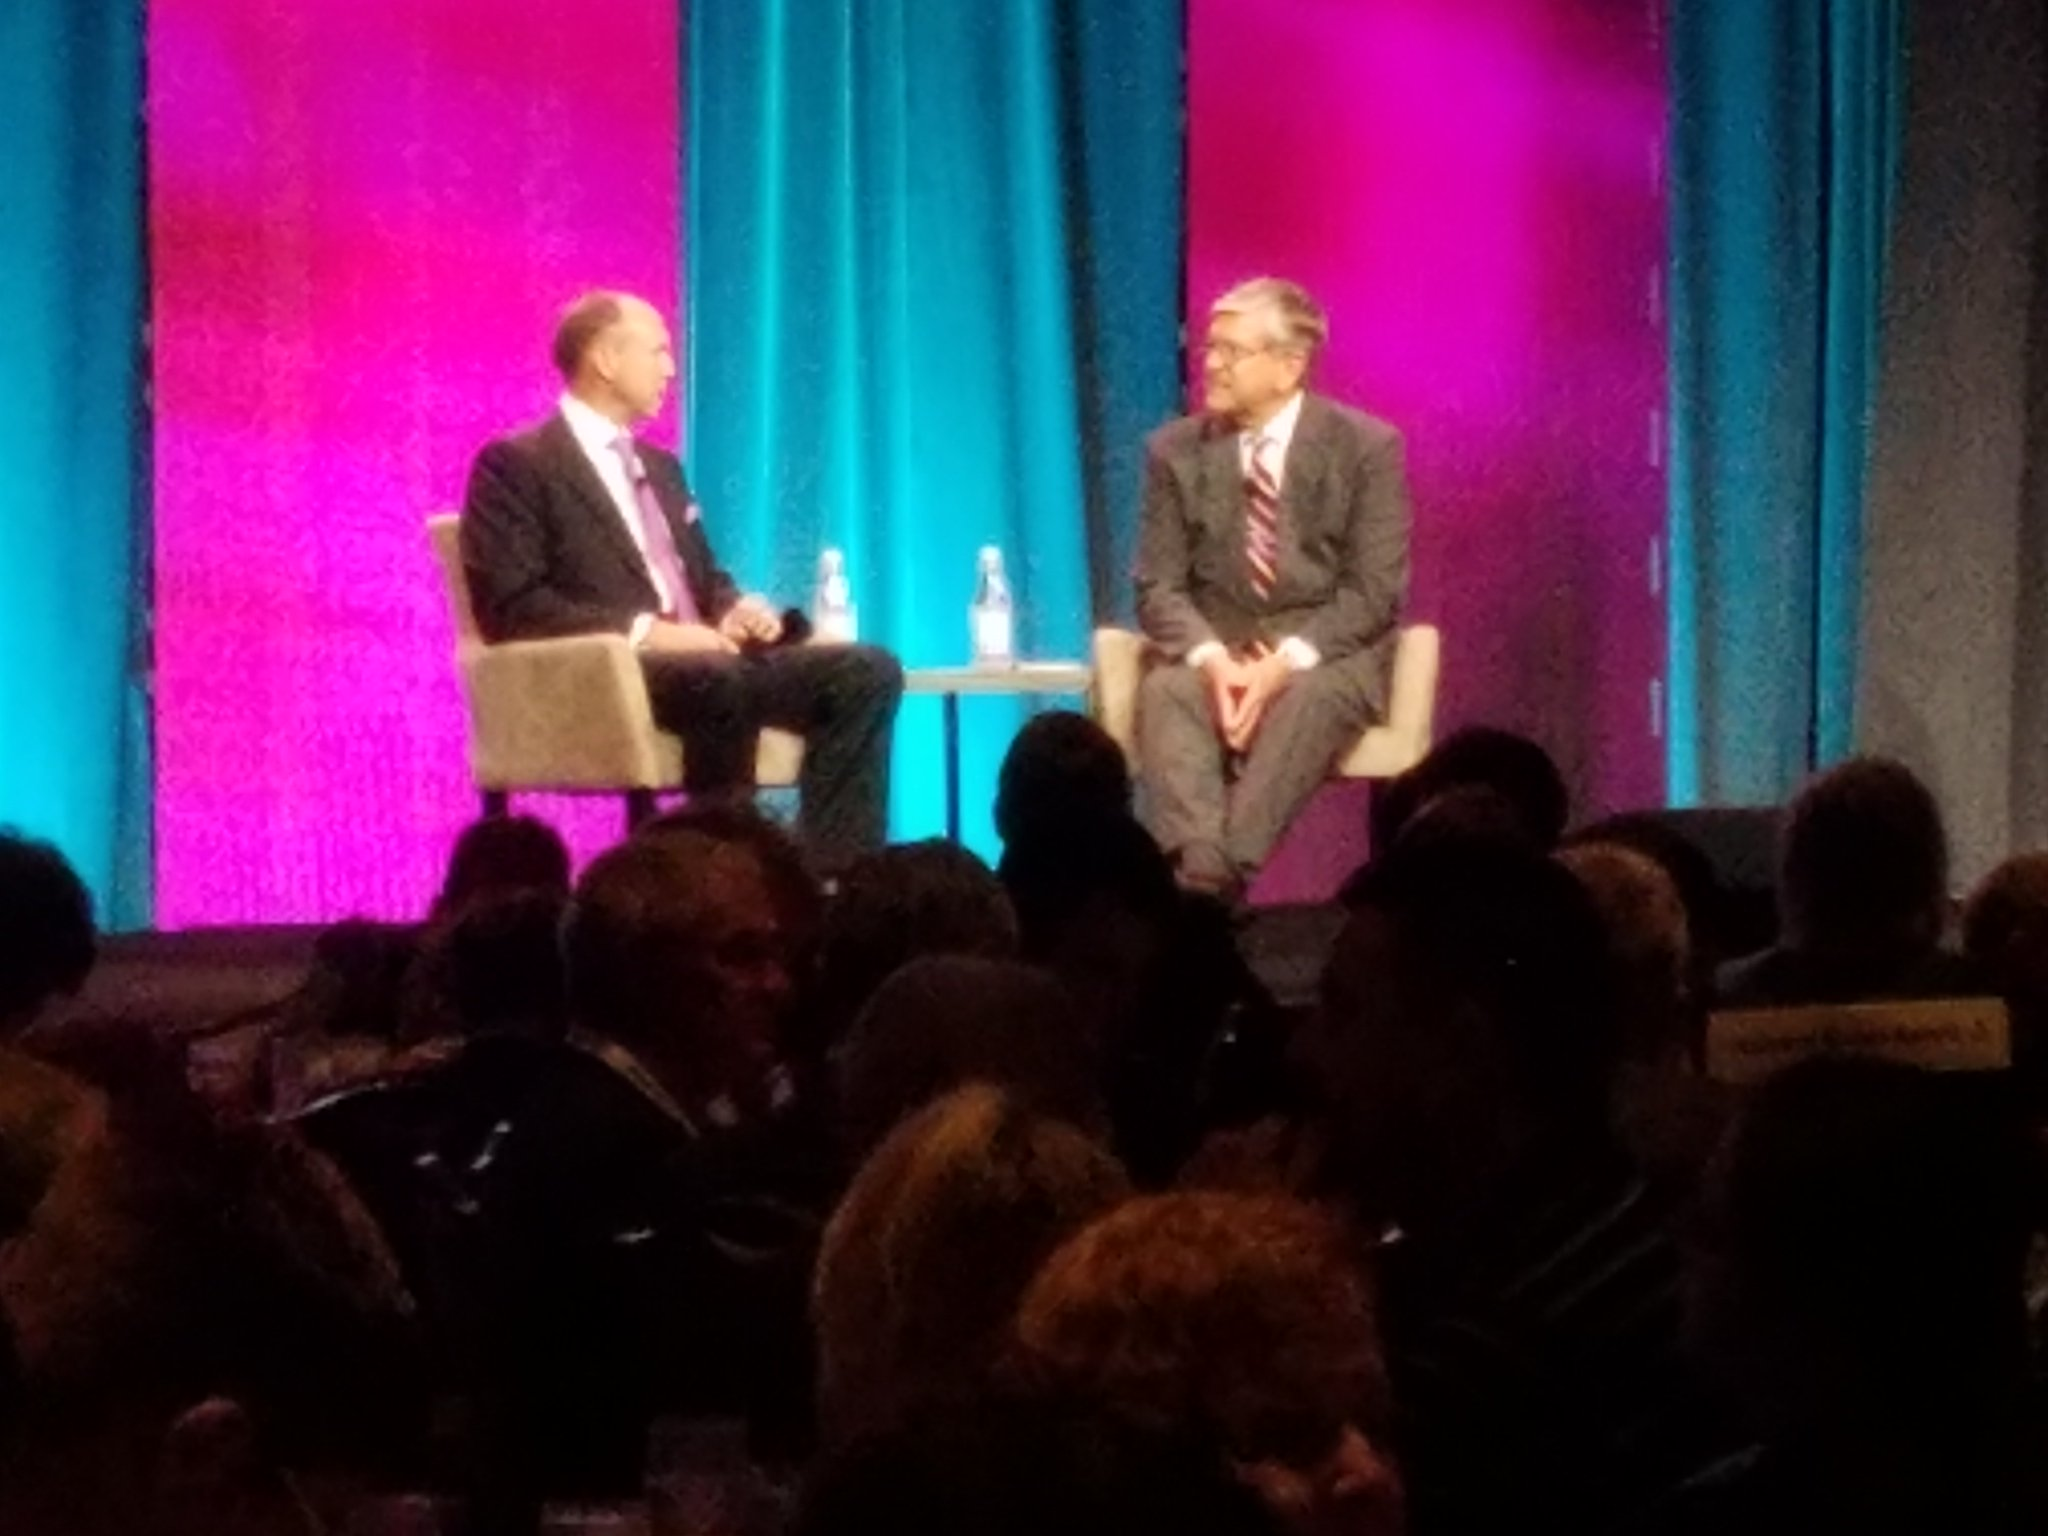 @nabtweets Gordon Smith and DTS CEO John Kirchner talking HD radio at the #Radioshow2016 Radio Luncheon. https://t.co/iHR8BZaZ6F